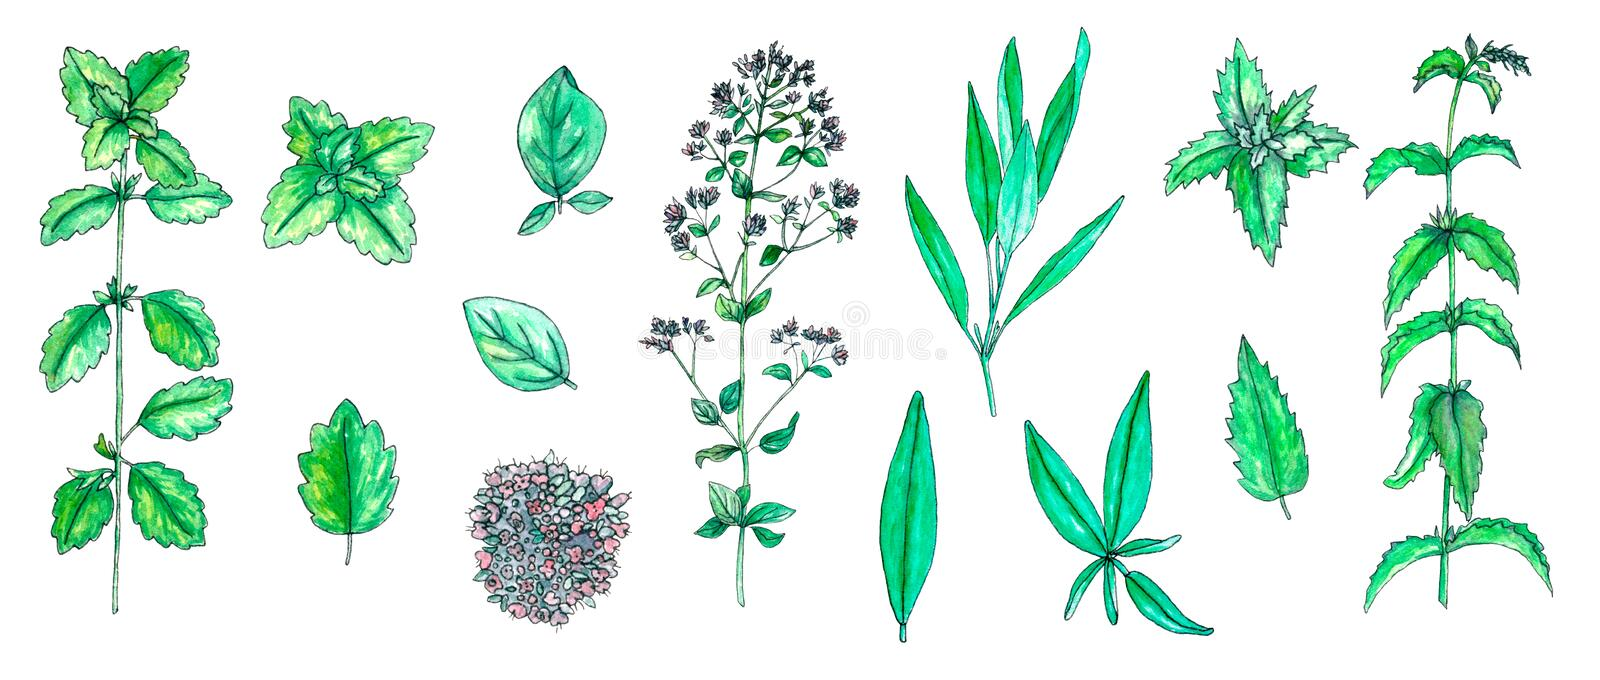 Set of hand painted watercolor sage, mint, balm, oregano isolated on white royalty free illustration